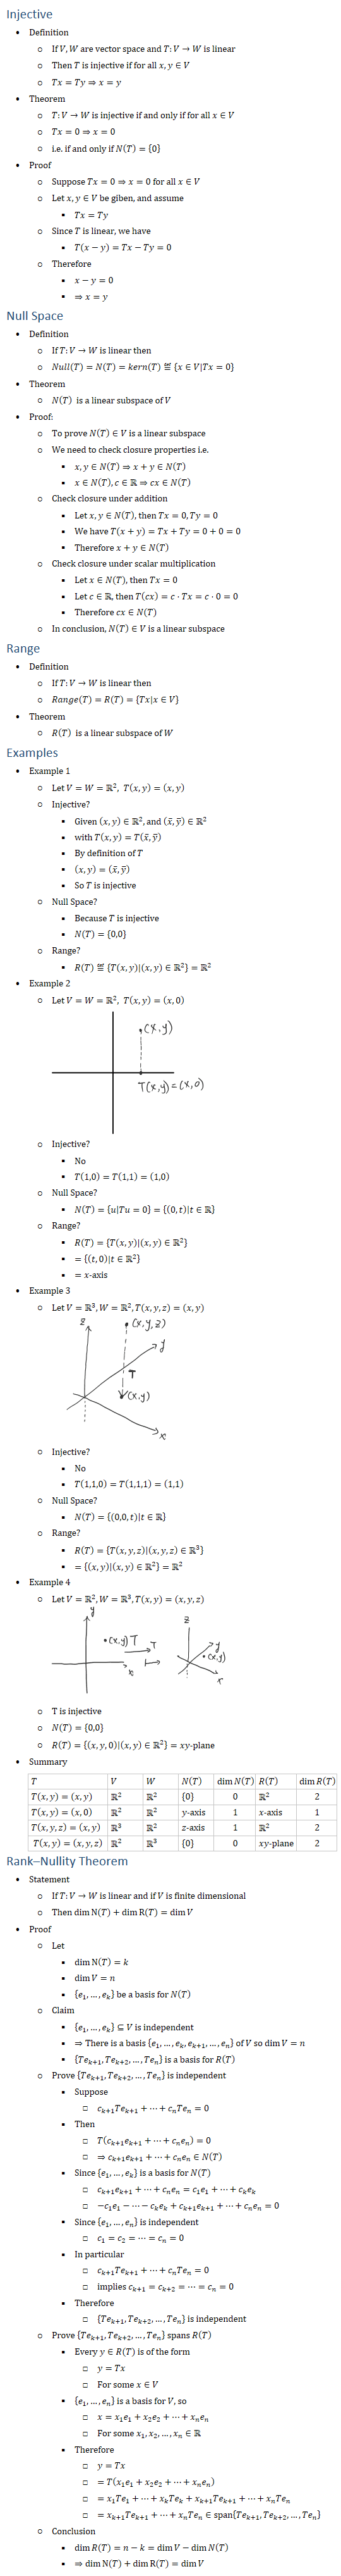 Injective • Definition ○ If V,W are vector space and T:V→W is linear ○ Then T is injective if for all x,y∈V ○ Tx=Ty⇒x=y • Theorem ○ T:V→W is injective if and only if for all x∈V ○ Tx=0⇒x=0 ○ i.e. if and only if N(T)={0} • Proof ○ Suppose Tx=0⇒x=0 for all x∈V ○ Let x,y∈V be giben, and assume § Tx=Ty ○ Since T is linear, we have § T(x−y)=Tx−Ty=0 ○ Therefore § x−y=0 § ⇒x=y Null Space • Definition ○ If T:V→W is linear then ○ Null(T)=N(T)=kern(T)≝{x∈V│Tx=0} • Theorem ○ N(T) is a linear subspace of V • Proof: ○ To prove N(T)∈V is a linear subspace ○ We need to check closure properties i.e. § x,y∈N(T)⇒x+y∈N(T) § x∈N(T), c∈R⇒cx∈N(T) ○ Check closure under addition § Let x,y∈N(T), then Tx=0, Ty=0 § We have T(x+y)=Tx+Ty=0+0=0 § Therefore x+y∈N(T) ○ Check closure under scalar multiplication § Let x∈N(T), then Tx=0 § Let c∈R, then T(cx)=c⋅Tx=c⋅0=0 § Therefore cx∈N(T) ○ In conclusion, N(T)∈V is a linear subspace Range • Definition ○ If T:V→W is linear then ○ Range(T)=R(T)={Tx│x∈V} • Theorem ○ R(T) is a linear subspace of W Examples • Example 1 ○ Let V=W=R2, T(x,y)=(x,y) ○ Injective? § Given (x,y)∈R2, and (x̅,y̅ )∈R2 § with T(x,y)=T(x̅,y̅ ) § By definition of T § (x,y)=(x̅,y̅ ) § So T is injective ○ Null Space? § Because T is injective § N(T)={0,0} ○ Range? § R(T)≝{T(x,y)│(x,y)∈R2 }=R2 • Example 2 ○ Let V=W=R2, T(x,y)=(x,0) ○ Injective? § No § T(1,0)=T(1,1)=(1,0) ○ Null Space? § N(T)={u│Tu=0}={(0,t)│t∈R ○ Range? § R(T)={T(x,y)│(x,y)∈R2 } § ={(t,0)│t∈R2 } § =x\-axis • Example 3 ○ Let V=R3, W=R2, T(x,y,z)=(x,y) ○ Injective? § No § T(1,1,0)=T(1,1,1)=(1,1) ○ Null Space? § N(T)={(0,0,t)│t∈R ○ Range? § R(T)={T(x,y,z)│(x,y,z)∈R3 } § ={(x,y)│(x,y)∈R2 }=R2 • Example 4 ○ Let V=R2, W=R3, T(x,y)=(x,y,z) ○ T is injective ○ N(T)={0,0} ○ R(T)={(x,y,0)│(x,y)∈R2 }=xy\-plane • Summary T V W N(T) dimN(T) R(T) dimR(T) T(x,y)=(x,y) R2 R2 {0} 0 R2 2 T(x,y)=(x,0) R2 R2 y\-axis 1 x\-axis 1 T(x,y,z)=(x,y) R3 R2 z\-axis 1 R2 2 T(x,y)=(x,y,z) R2 R3 {0} 0 xy\-plane 2 Rank–Nullity Theorem • Statement ○ If T:V